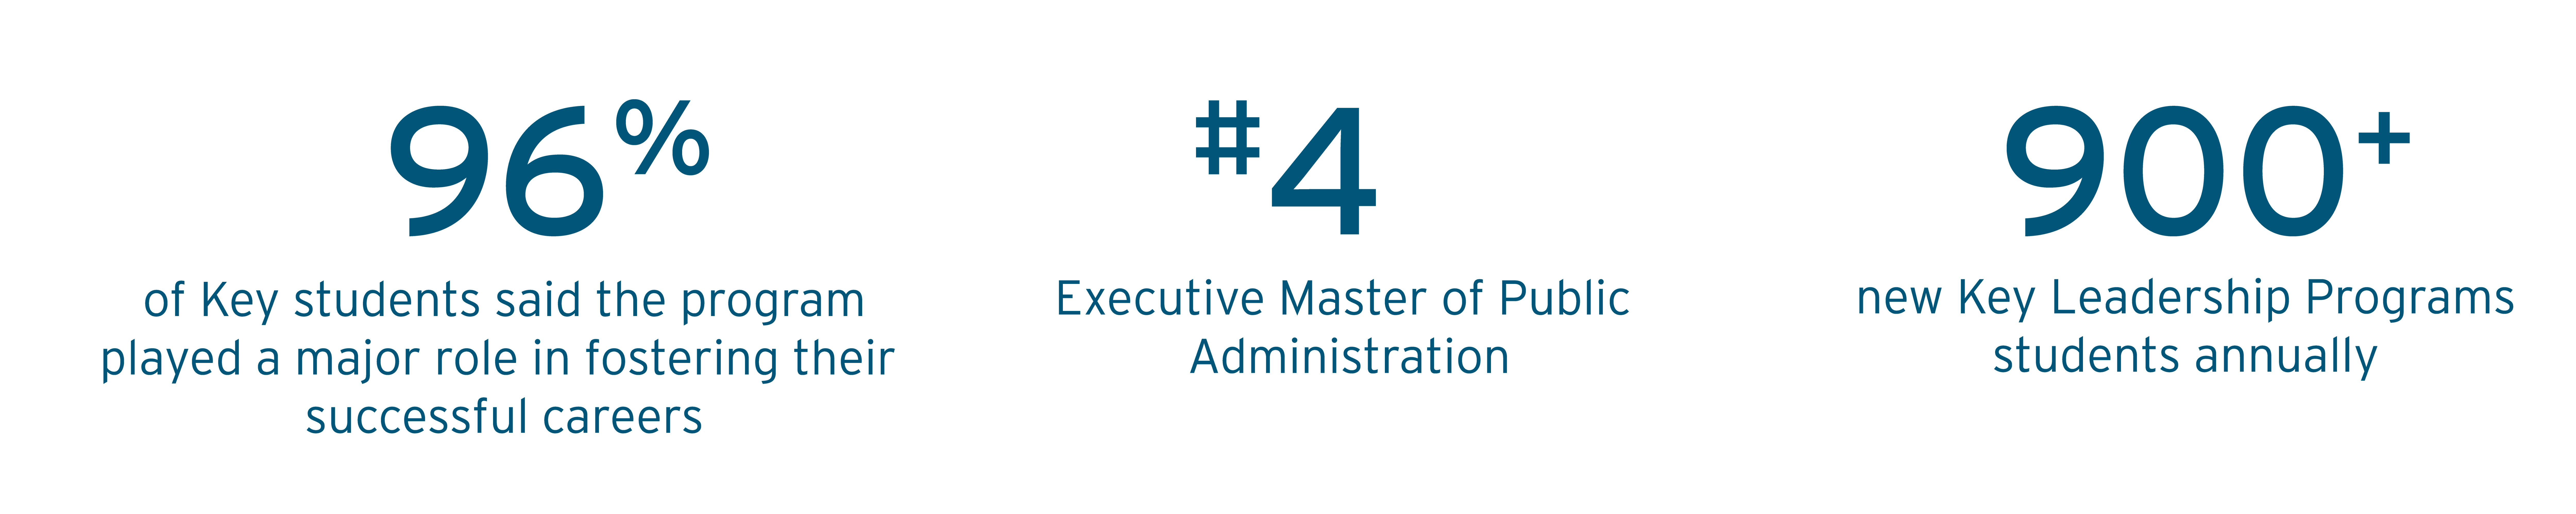 The Key Executive MPA is ranked#4 in the nation for Executive Master in Public Administration Programs. There are 900+ new Key students annually. 96% of Key students said the program helped foster their successful careers.